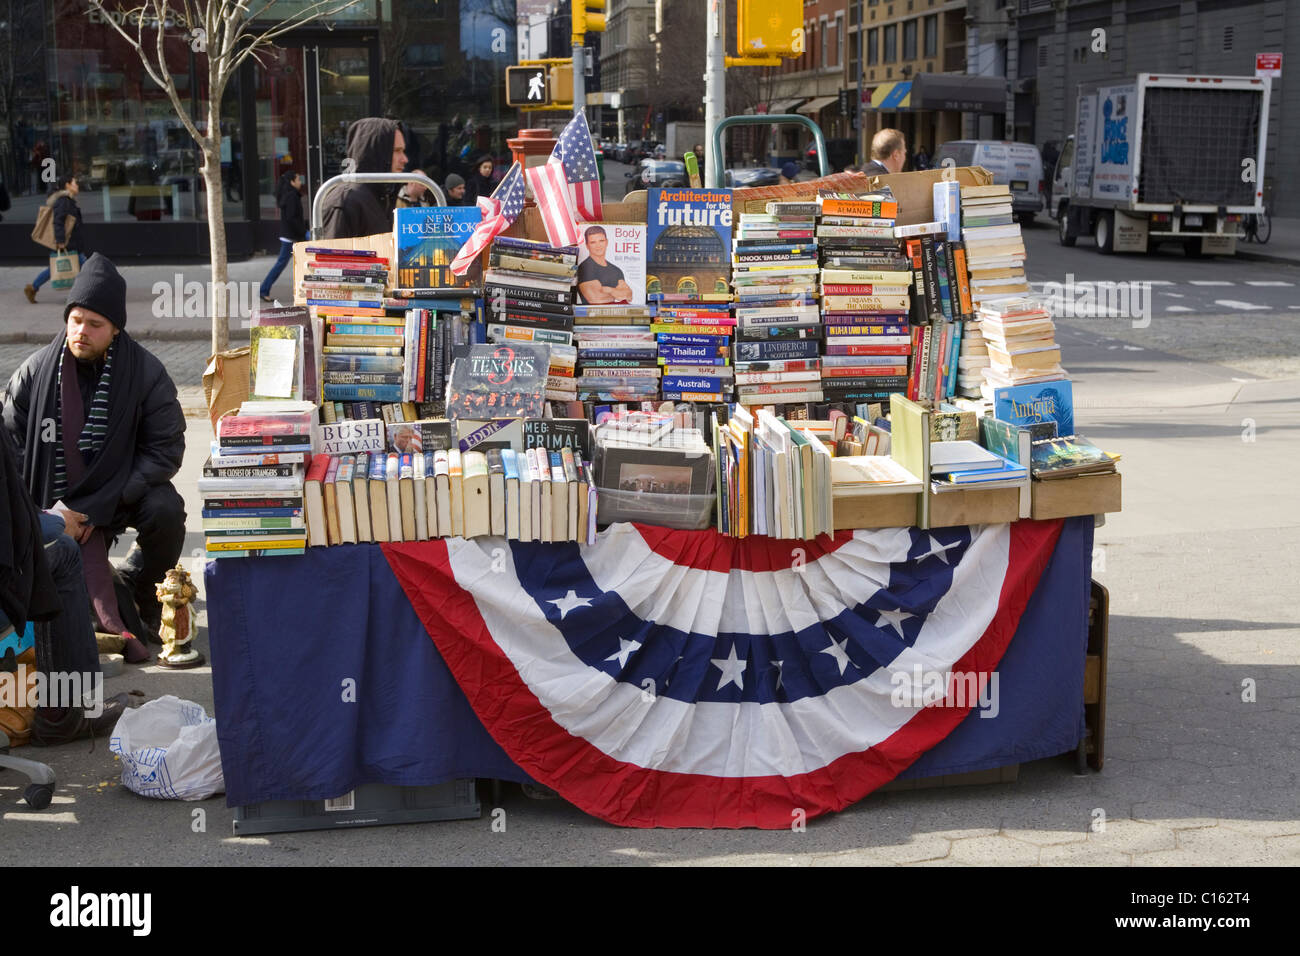 Used books for sale at Union Square, New York City. - Stock Image